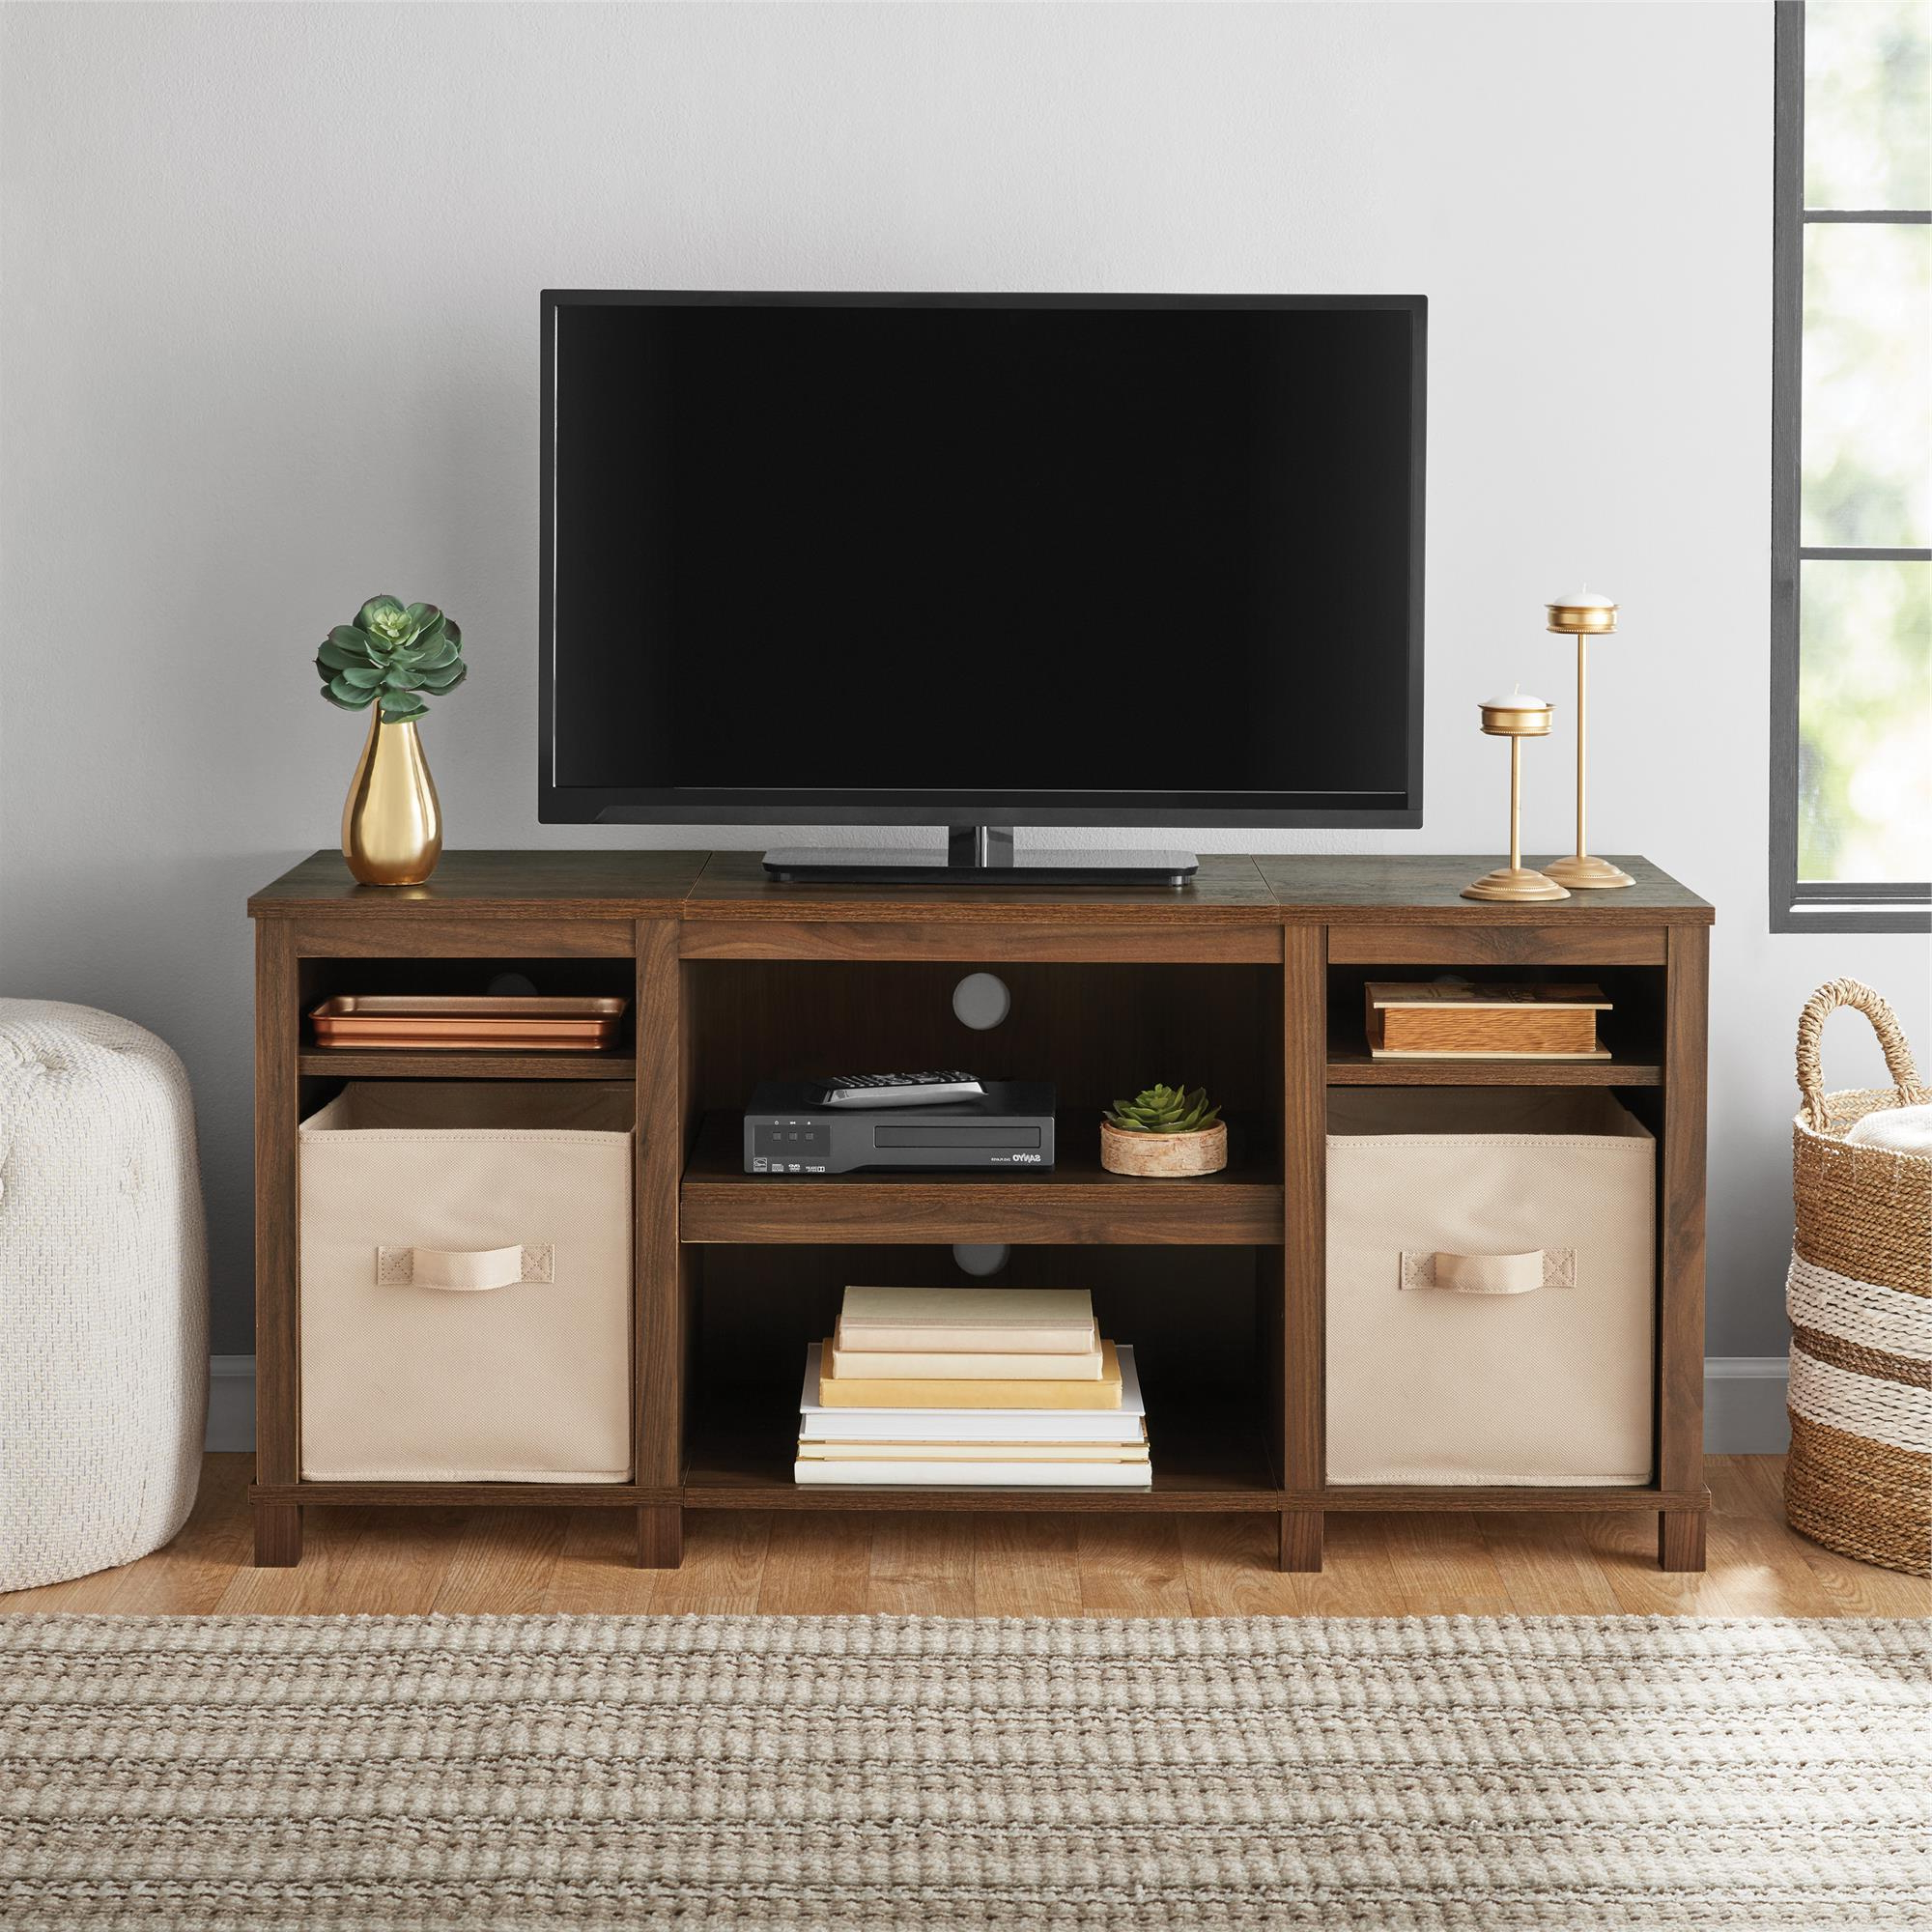 """2018 Mainstays Parsons Cubby Tv Stand For Tvs Up To 50"""", Walnut Throughout Allegra Tv Stands For Tvs Up To 50"""" (View 2 of 25)"""